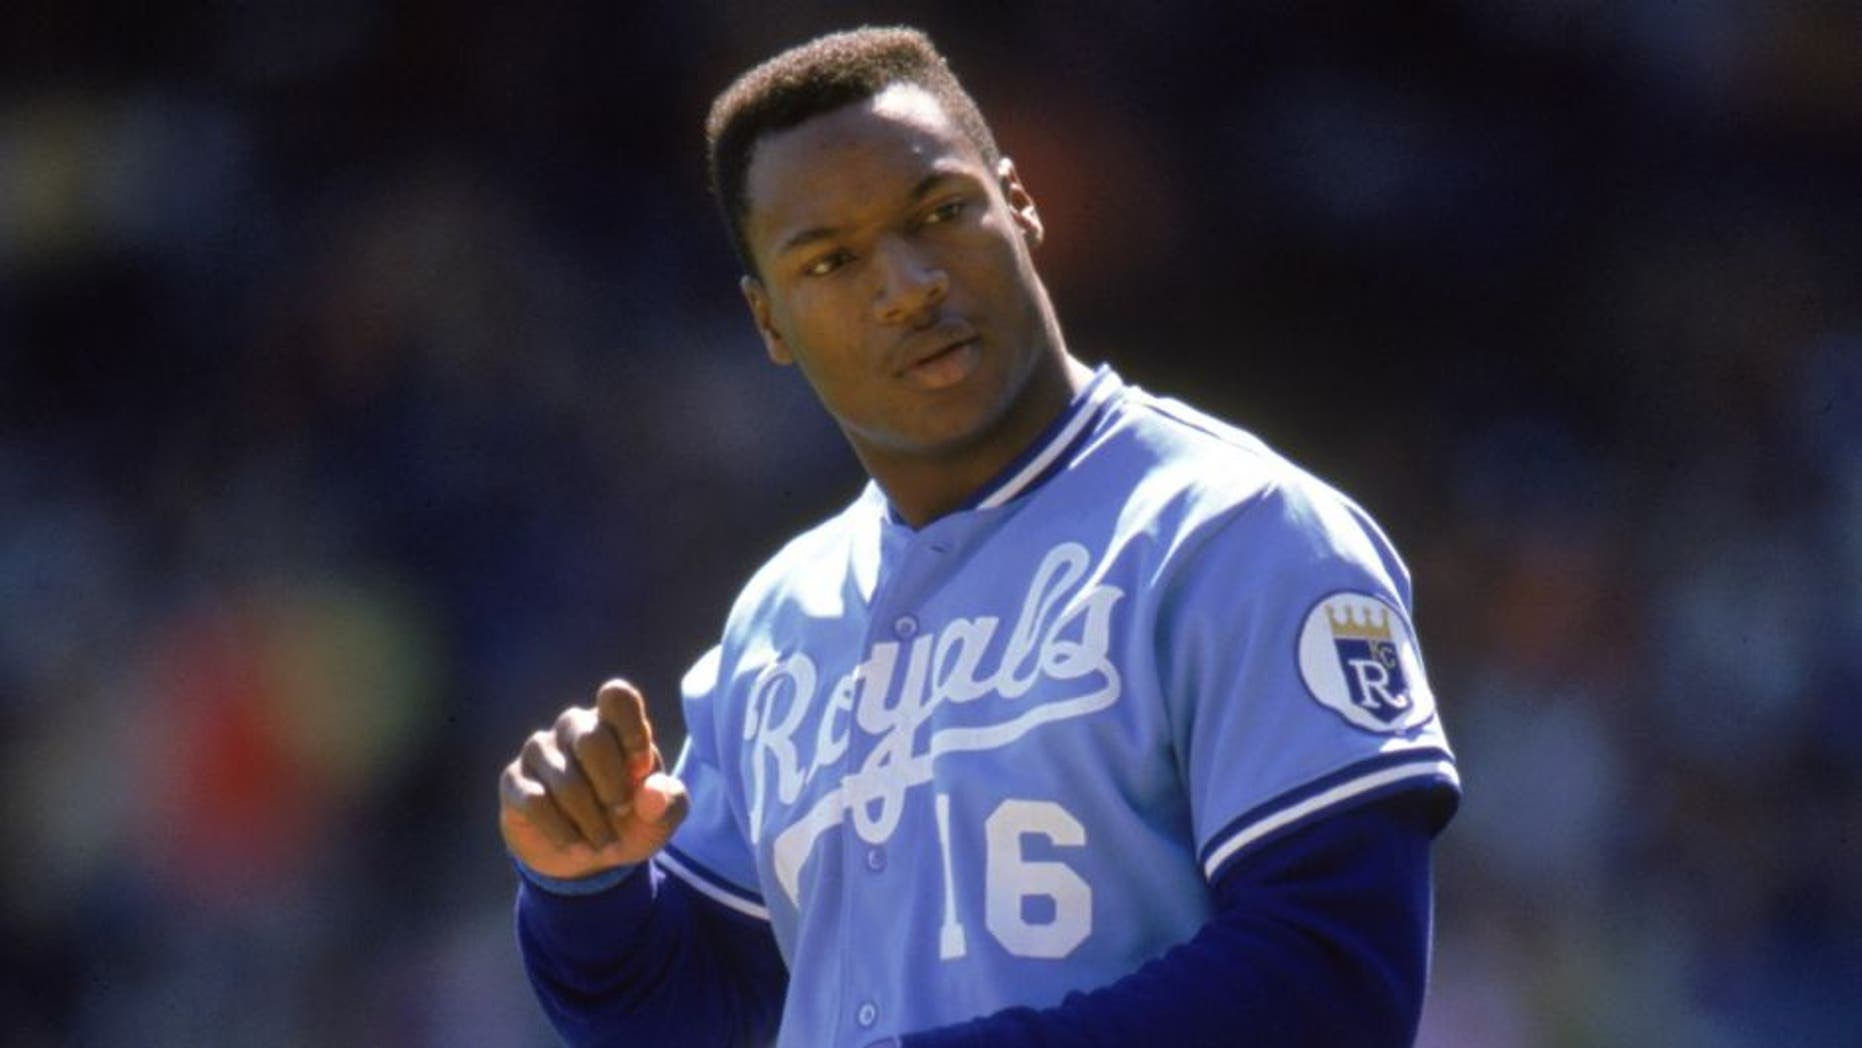 UNDATED: Bo Jackson #16 of the Kansas City Royals walks off the field during a season game. Bo Jackson played for the Kansas City Royals from 1986-1990. (Photo by: Ron Vesely/Getty Images) *** Local Caption *** Bo Jackson